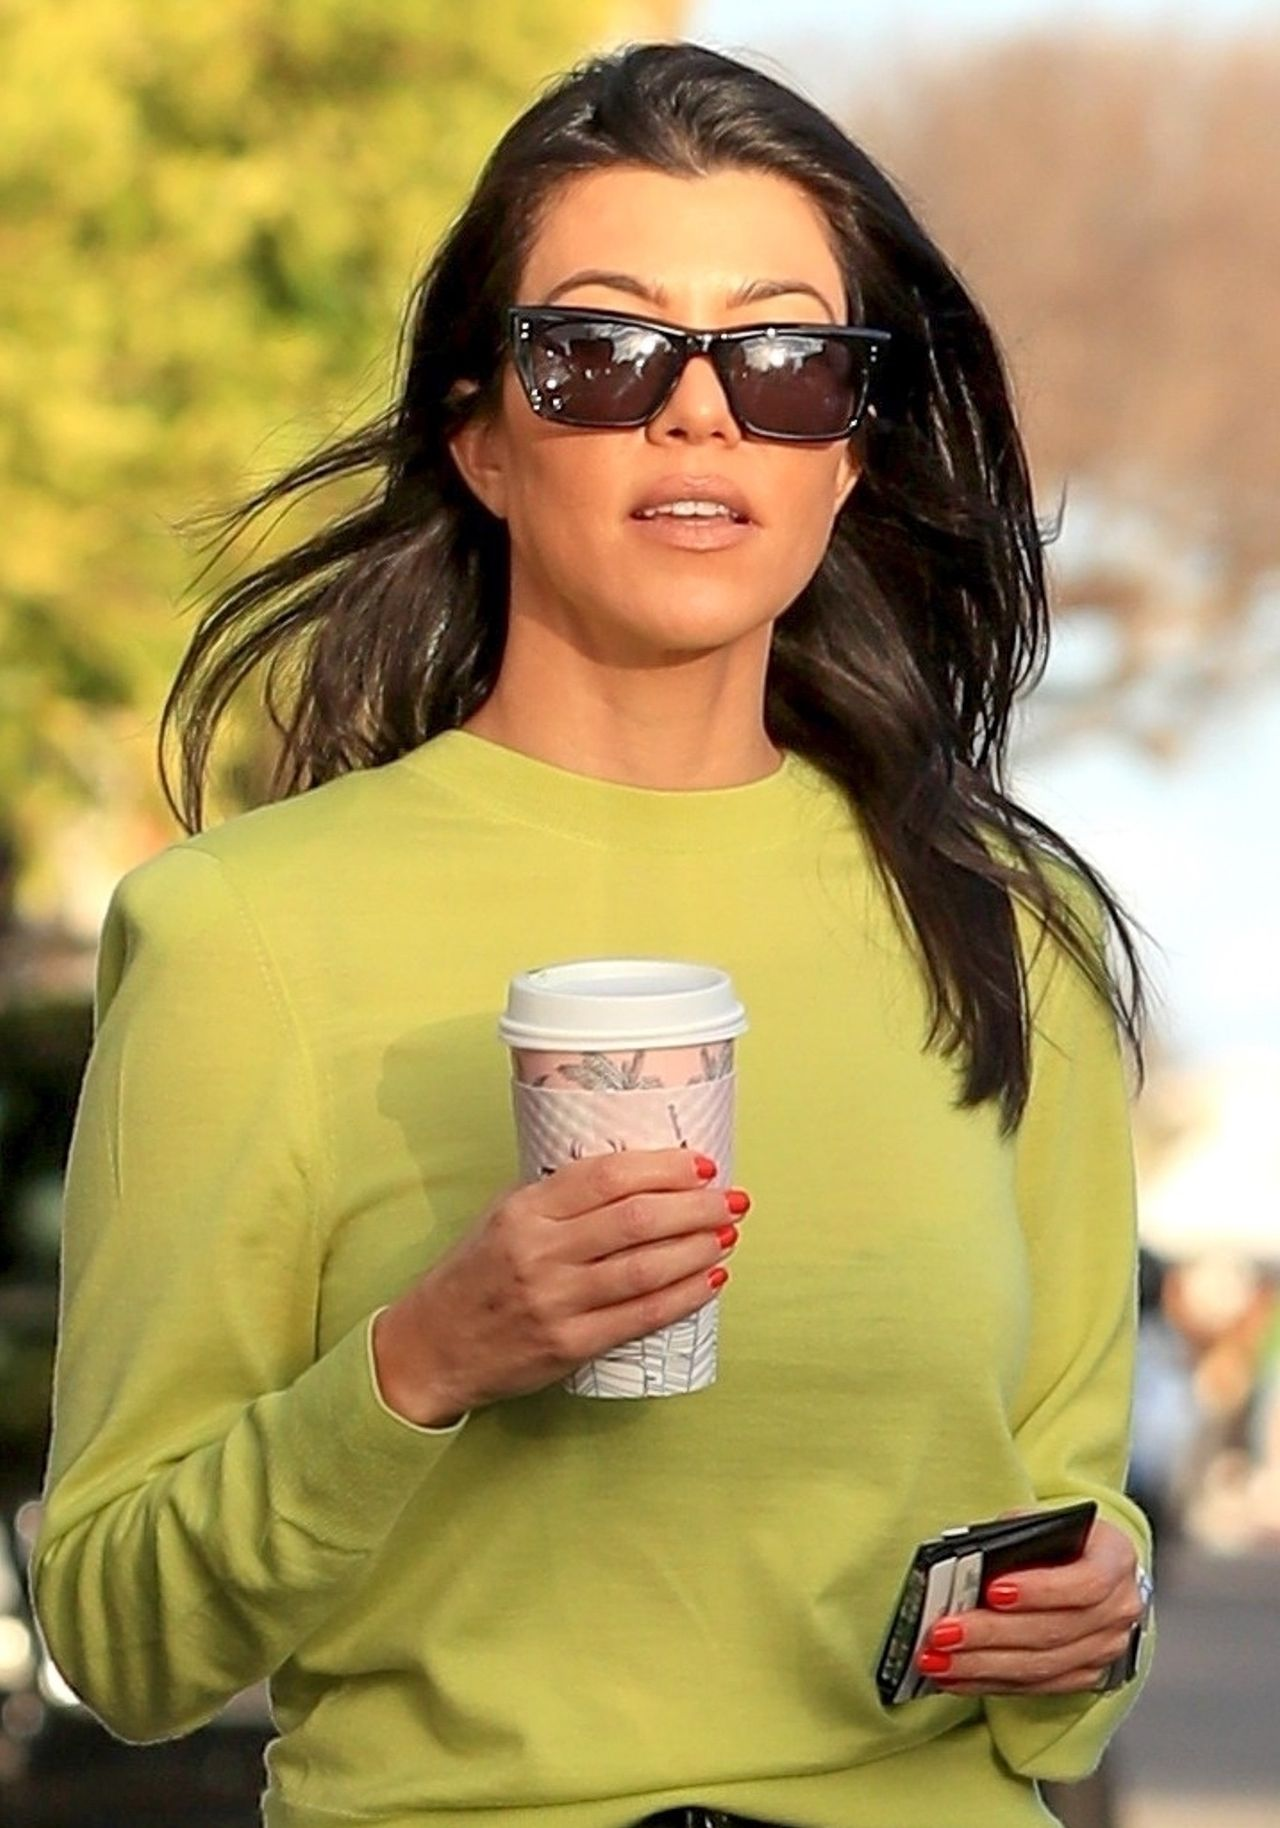 *EXCLUSIVE* Kourtney Kardashian goes on coffee run with friend shining in neon sweatshirt Kourtney Kardashian